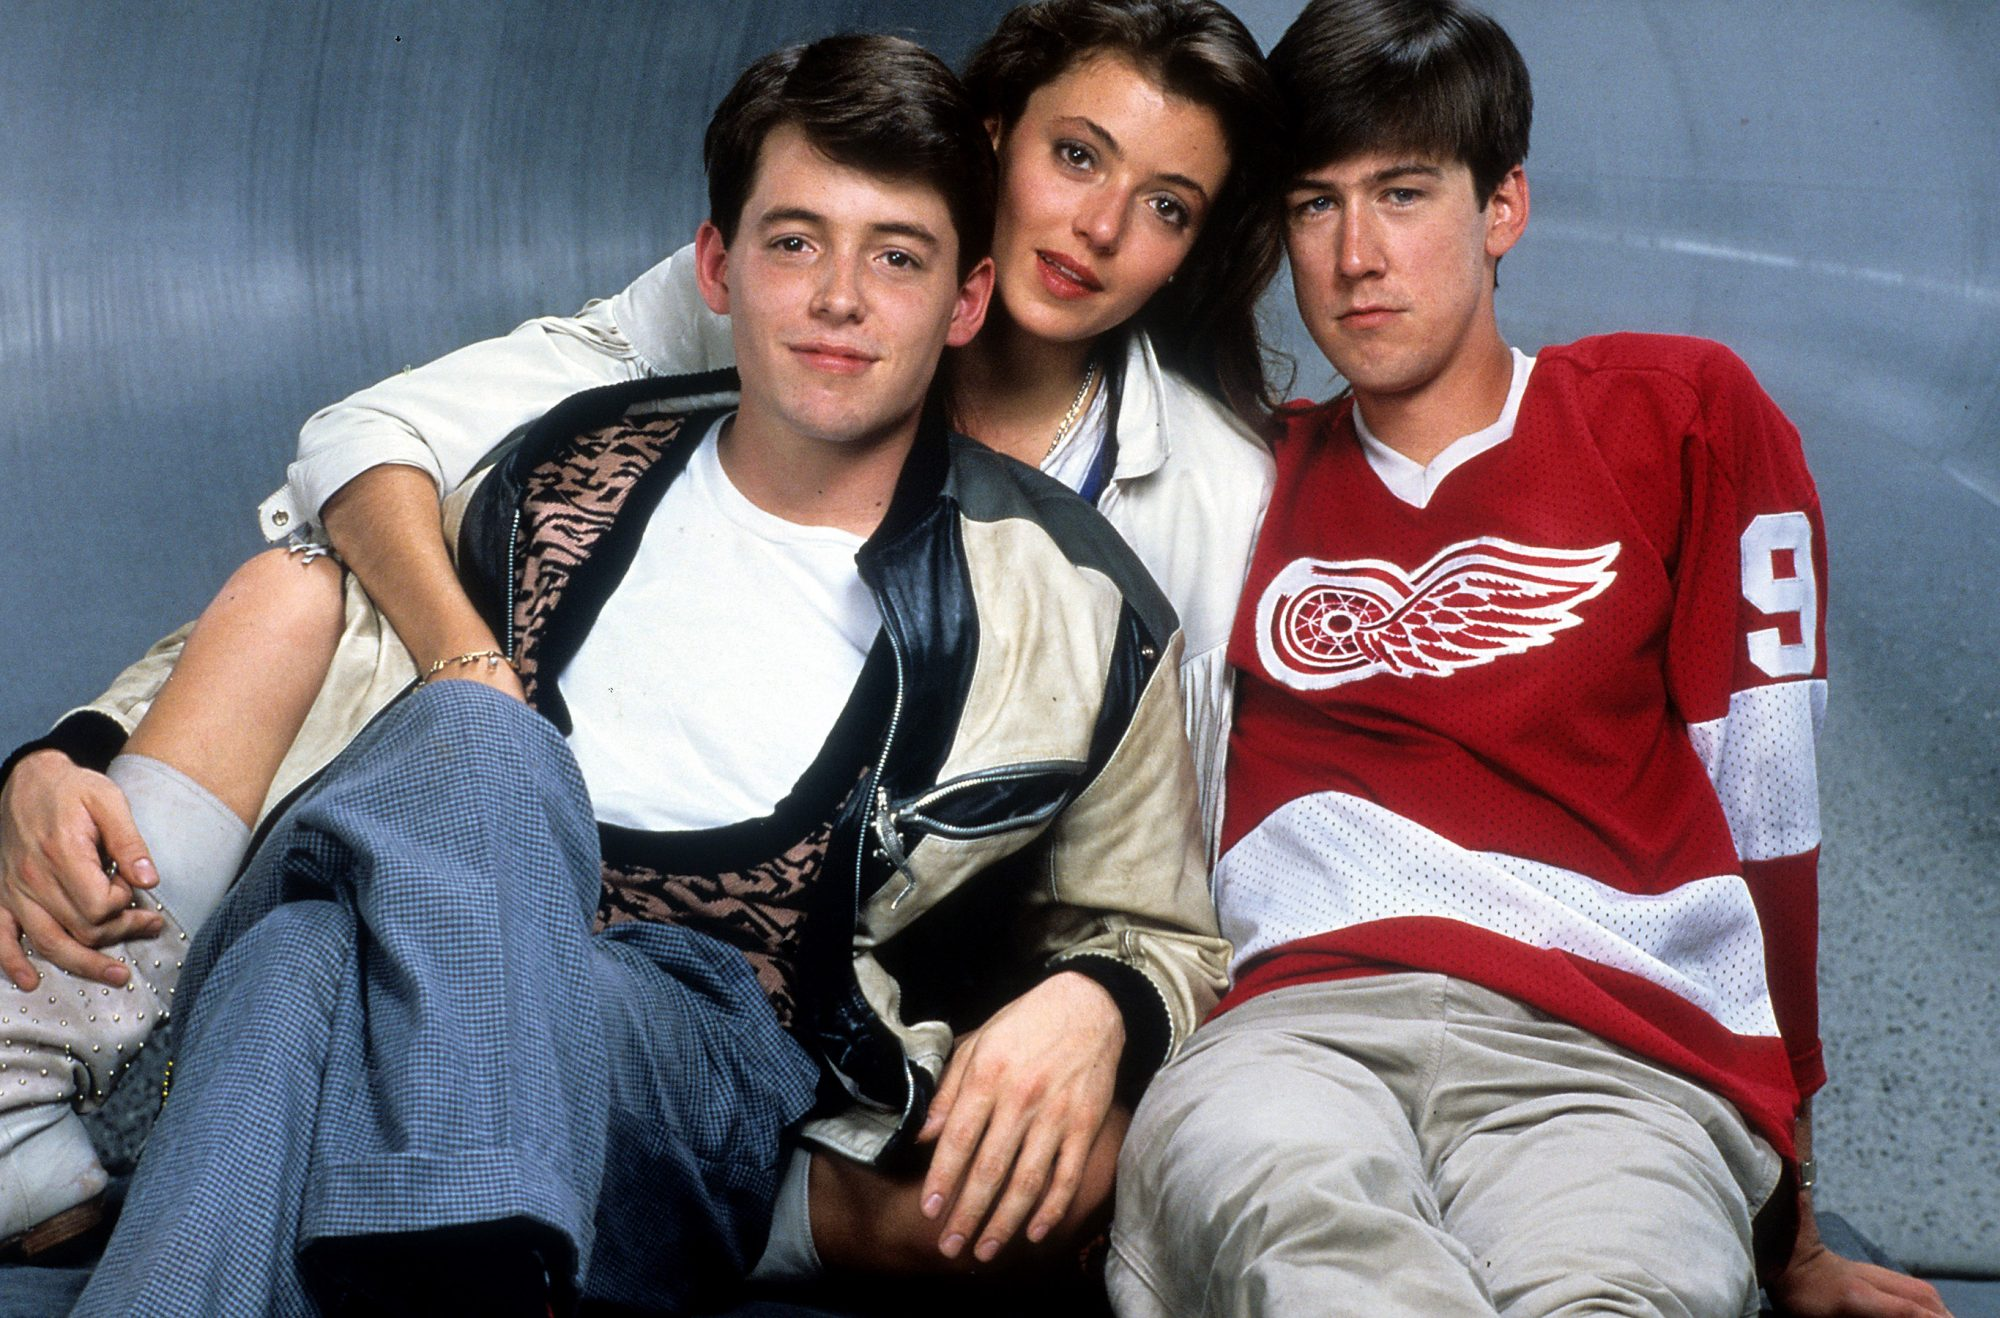 Matthew Broderick And Alan Ruck